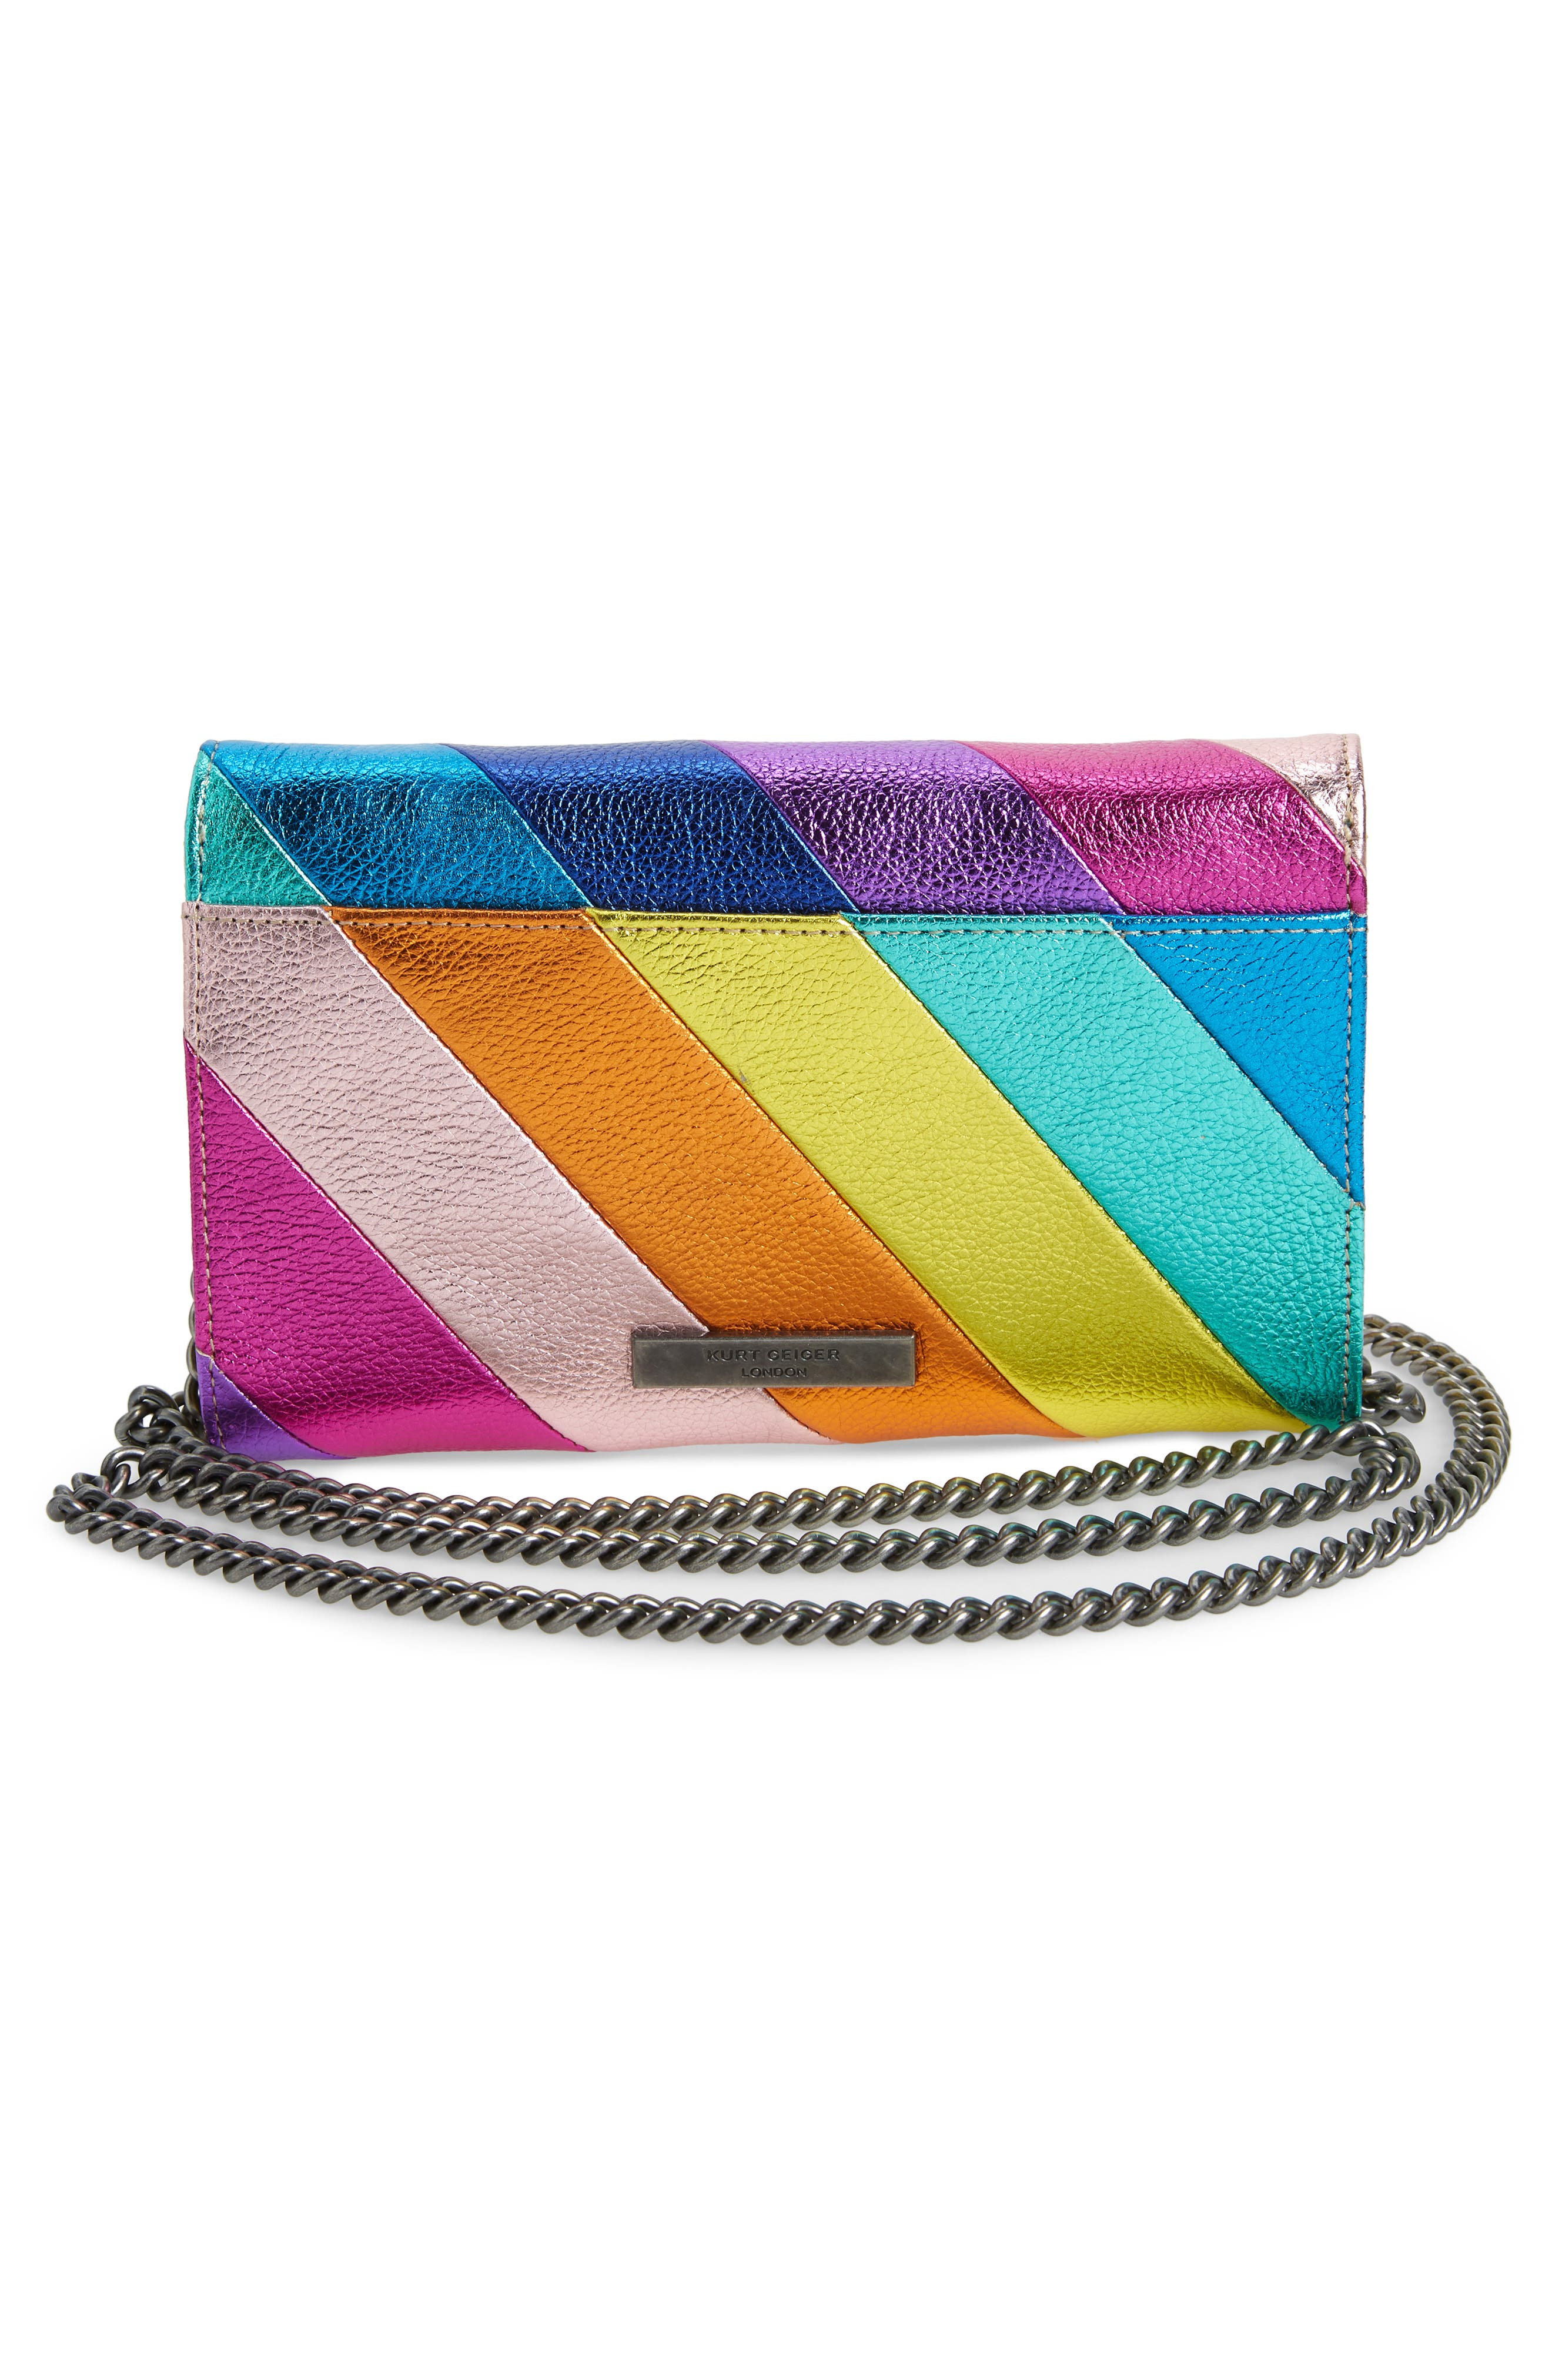 Stripe Leather Chain Wallet,                             Alternate thumbnail 3, color,                             MULTI/ OTHER